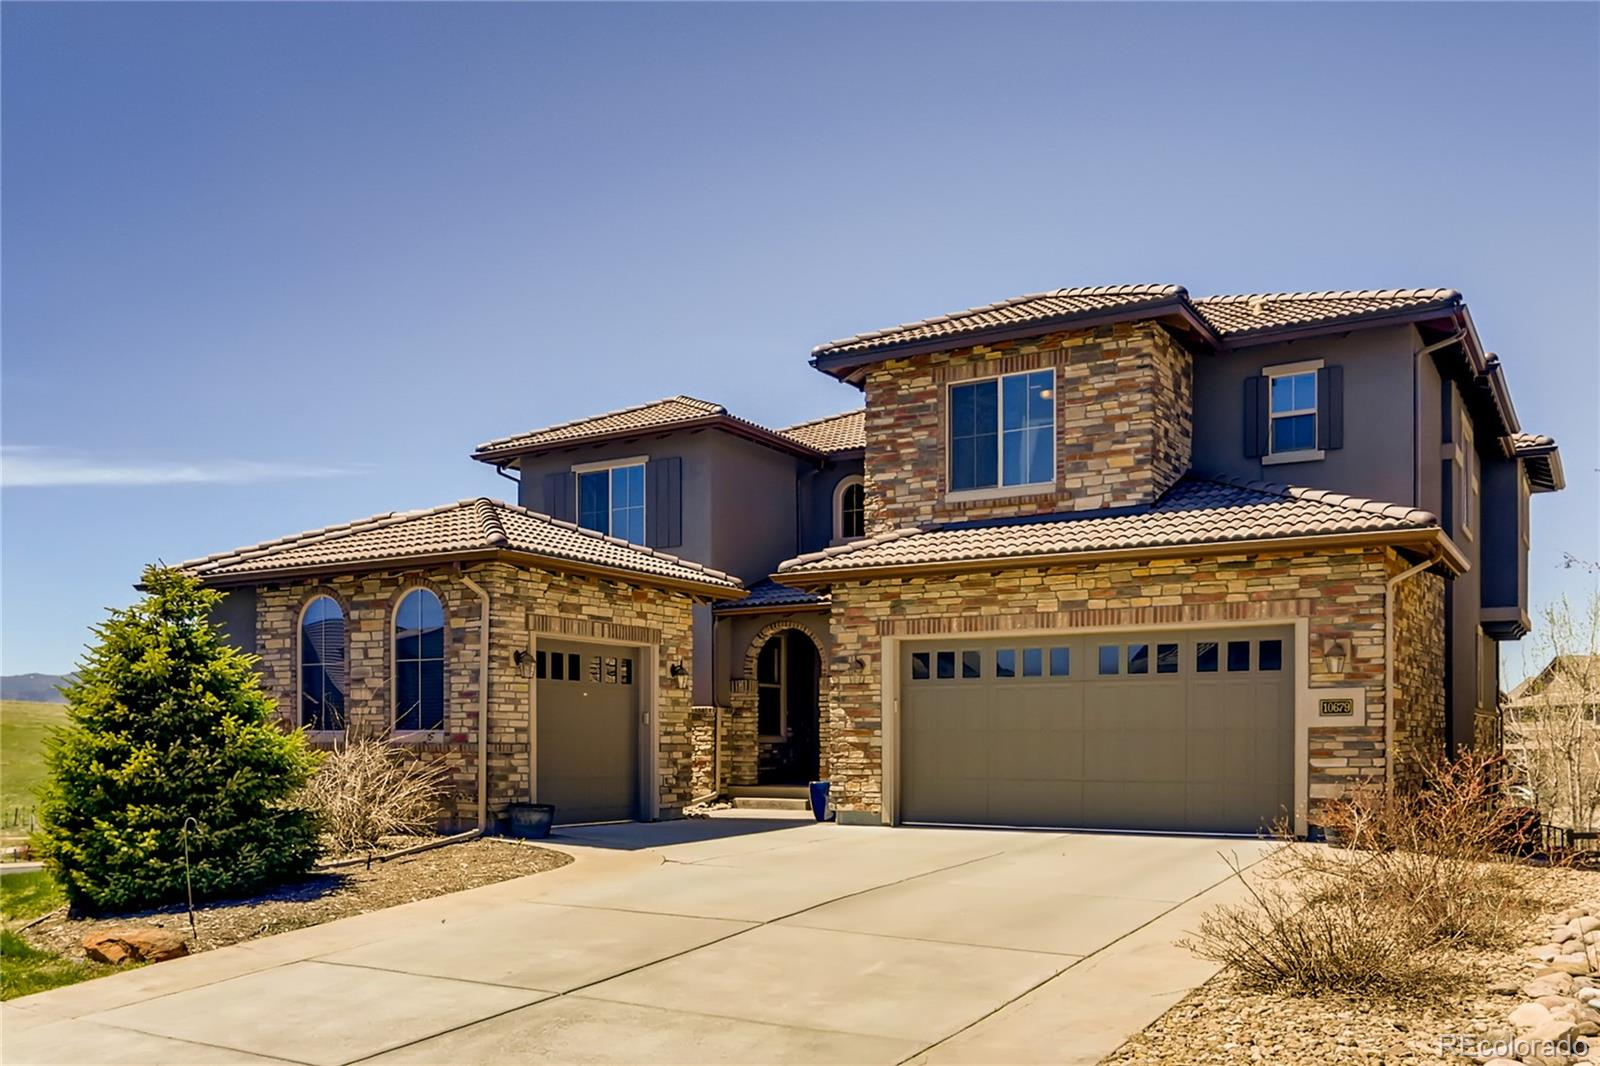 10679 Manorstone Drive, Highlands Ranch, CO 80126 - Highlands Ranch, CO real estate listing